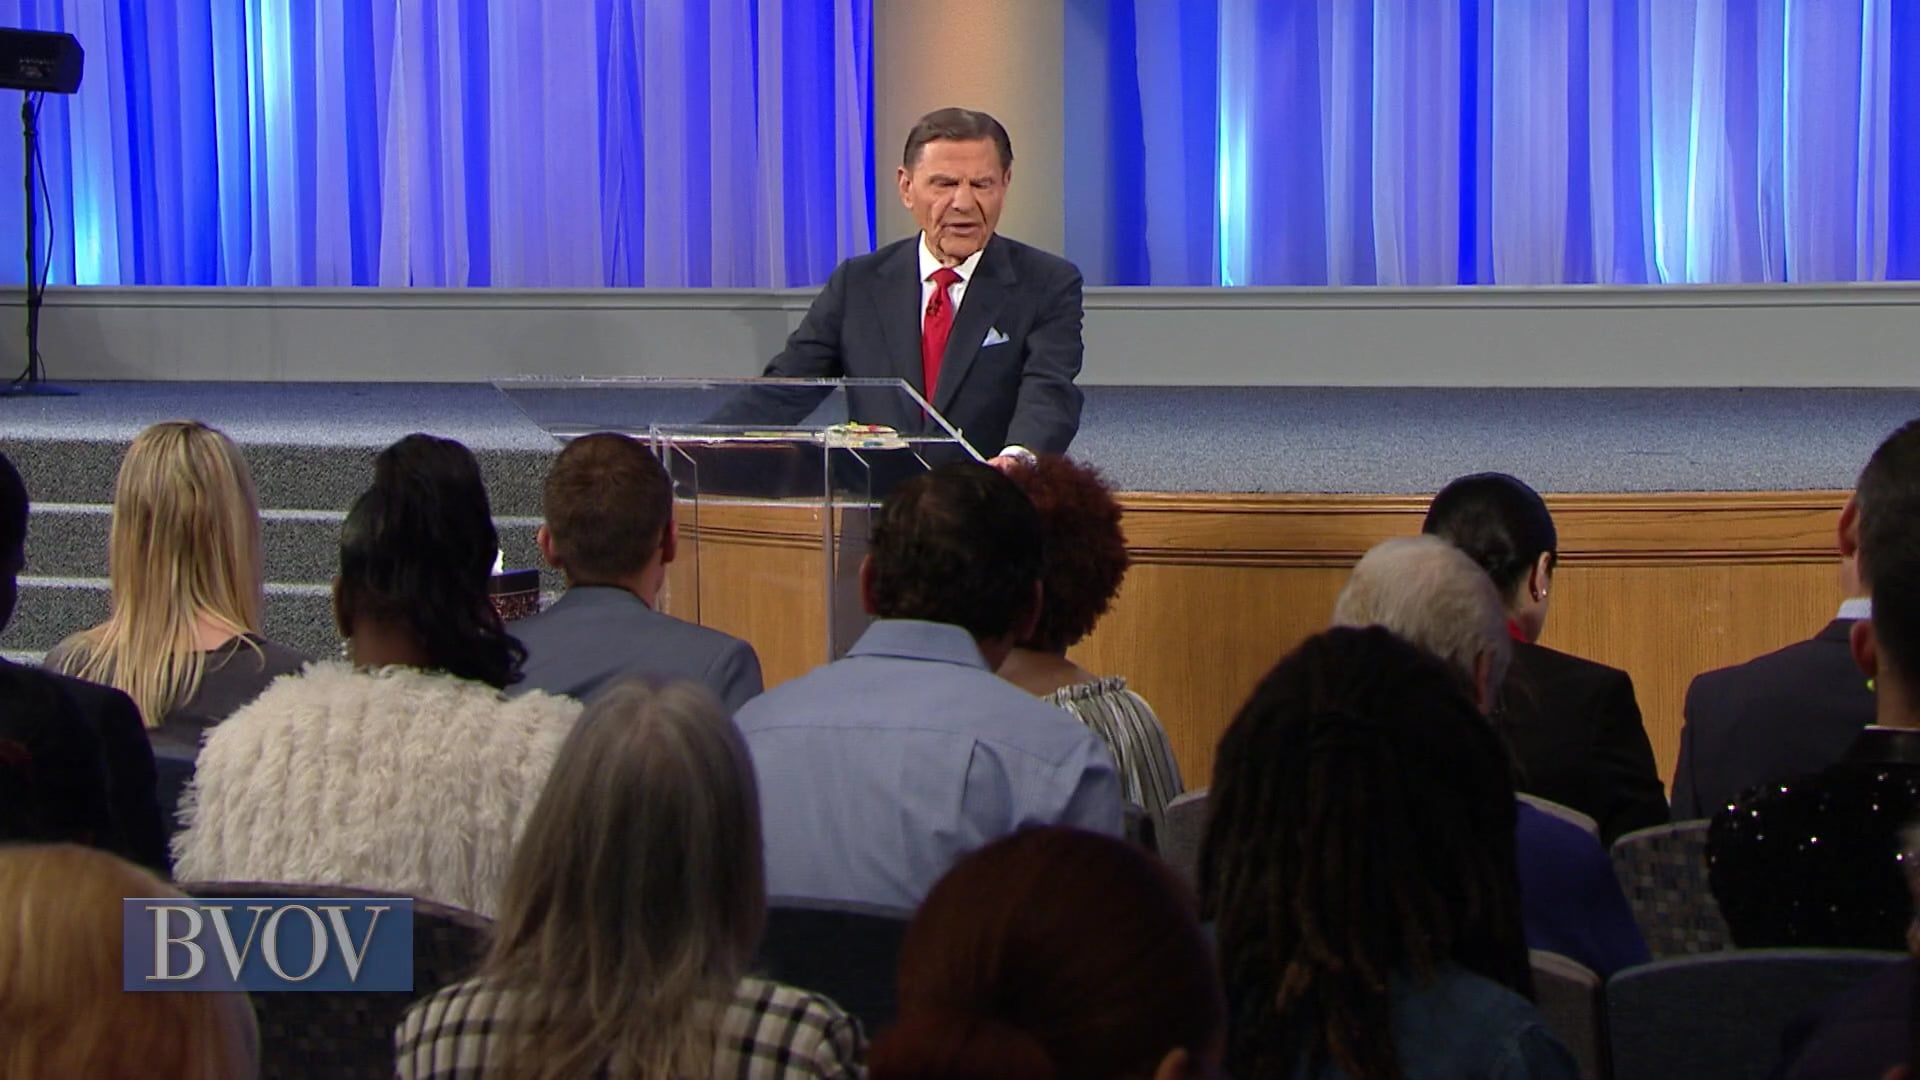 It's time to go into all the world and share God's goodness just like Jesus! Join Kenneth Copeland on Believer's Voice of Victory as he outlines the six foundational teachings of Jesus and how He ministered the goodness of God here on earth. See how you are called to do the same through the gifts of the Holy Spirit!